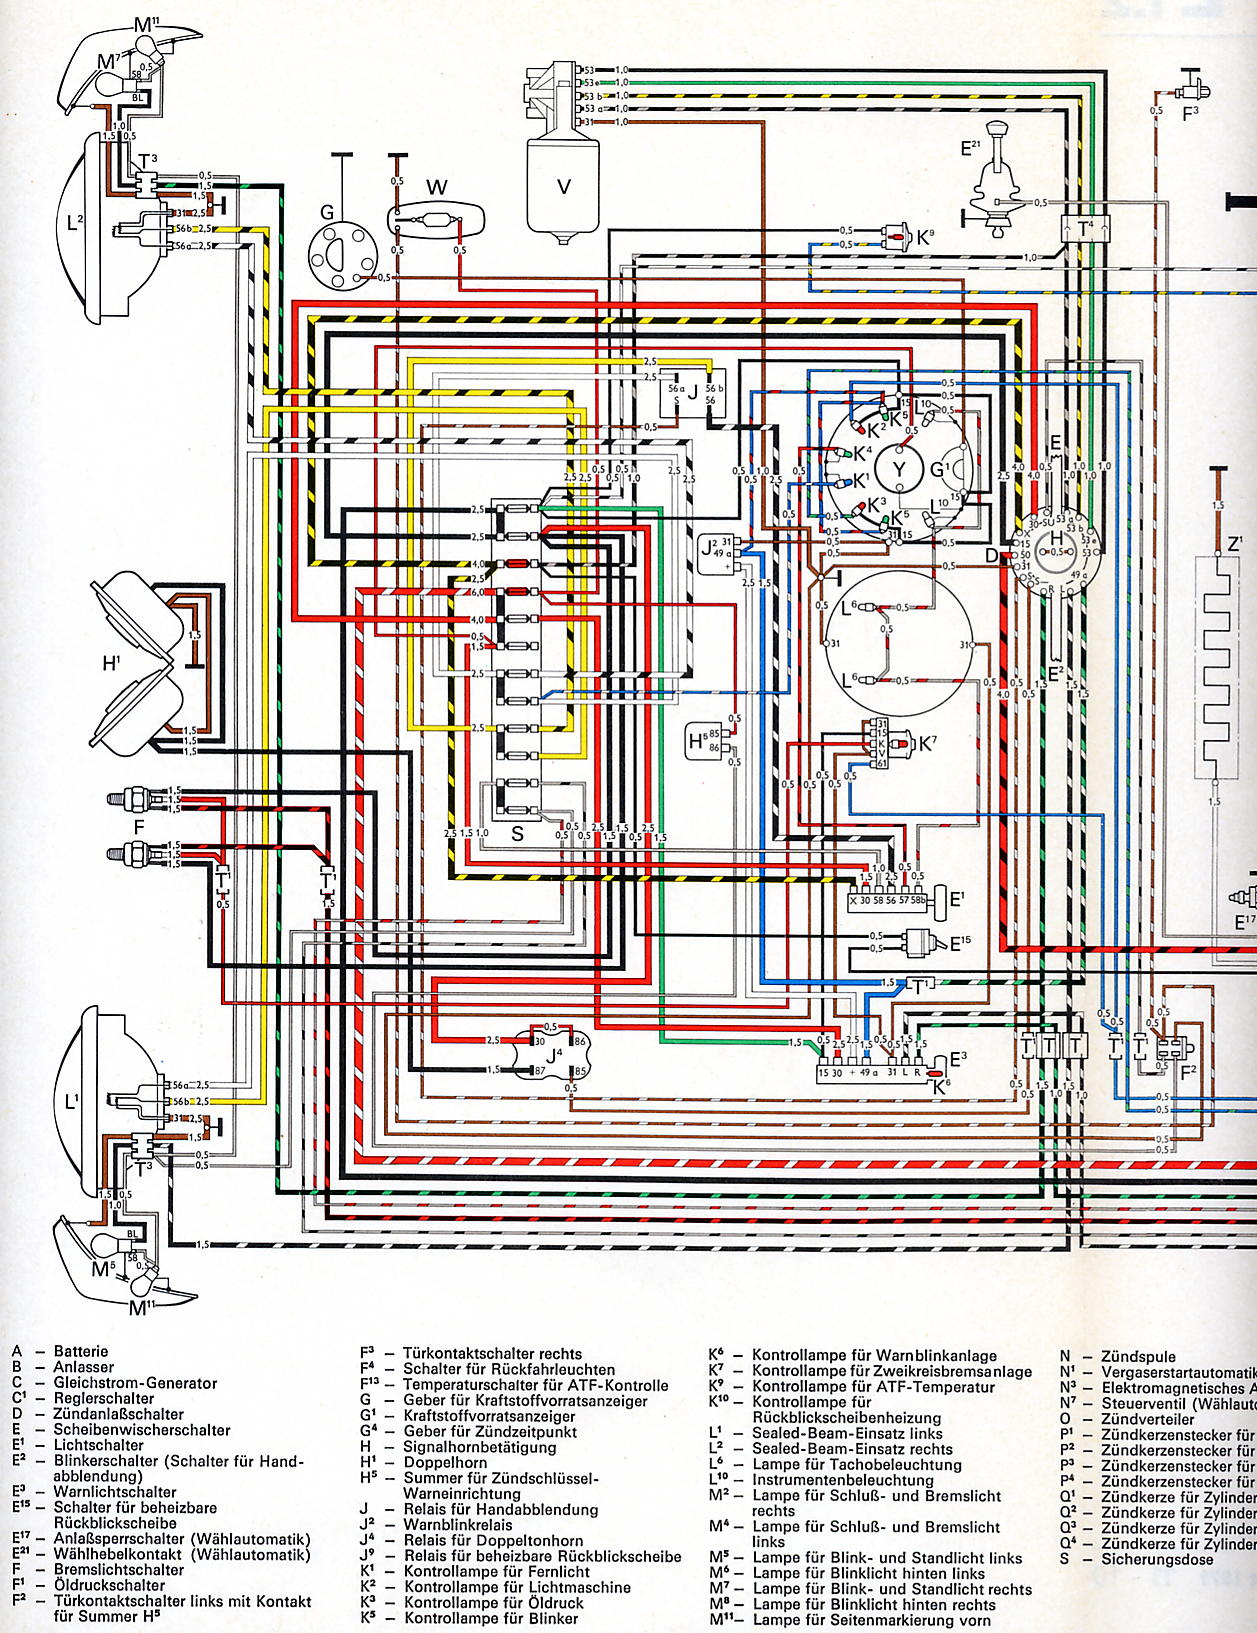 Karmann_Ghia_USA_from_August_1971 1 vw mk1 wiring diagram 1971 vw beetle wiring diagram \u2022 wiring fuse box seat leon mk1 at gsmx.co